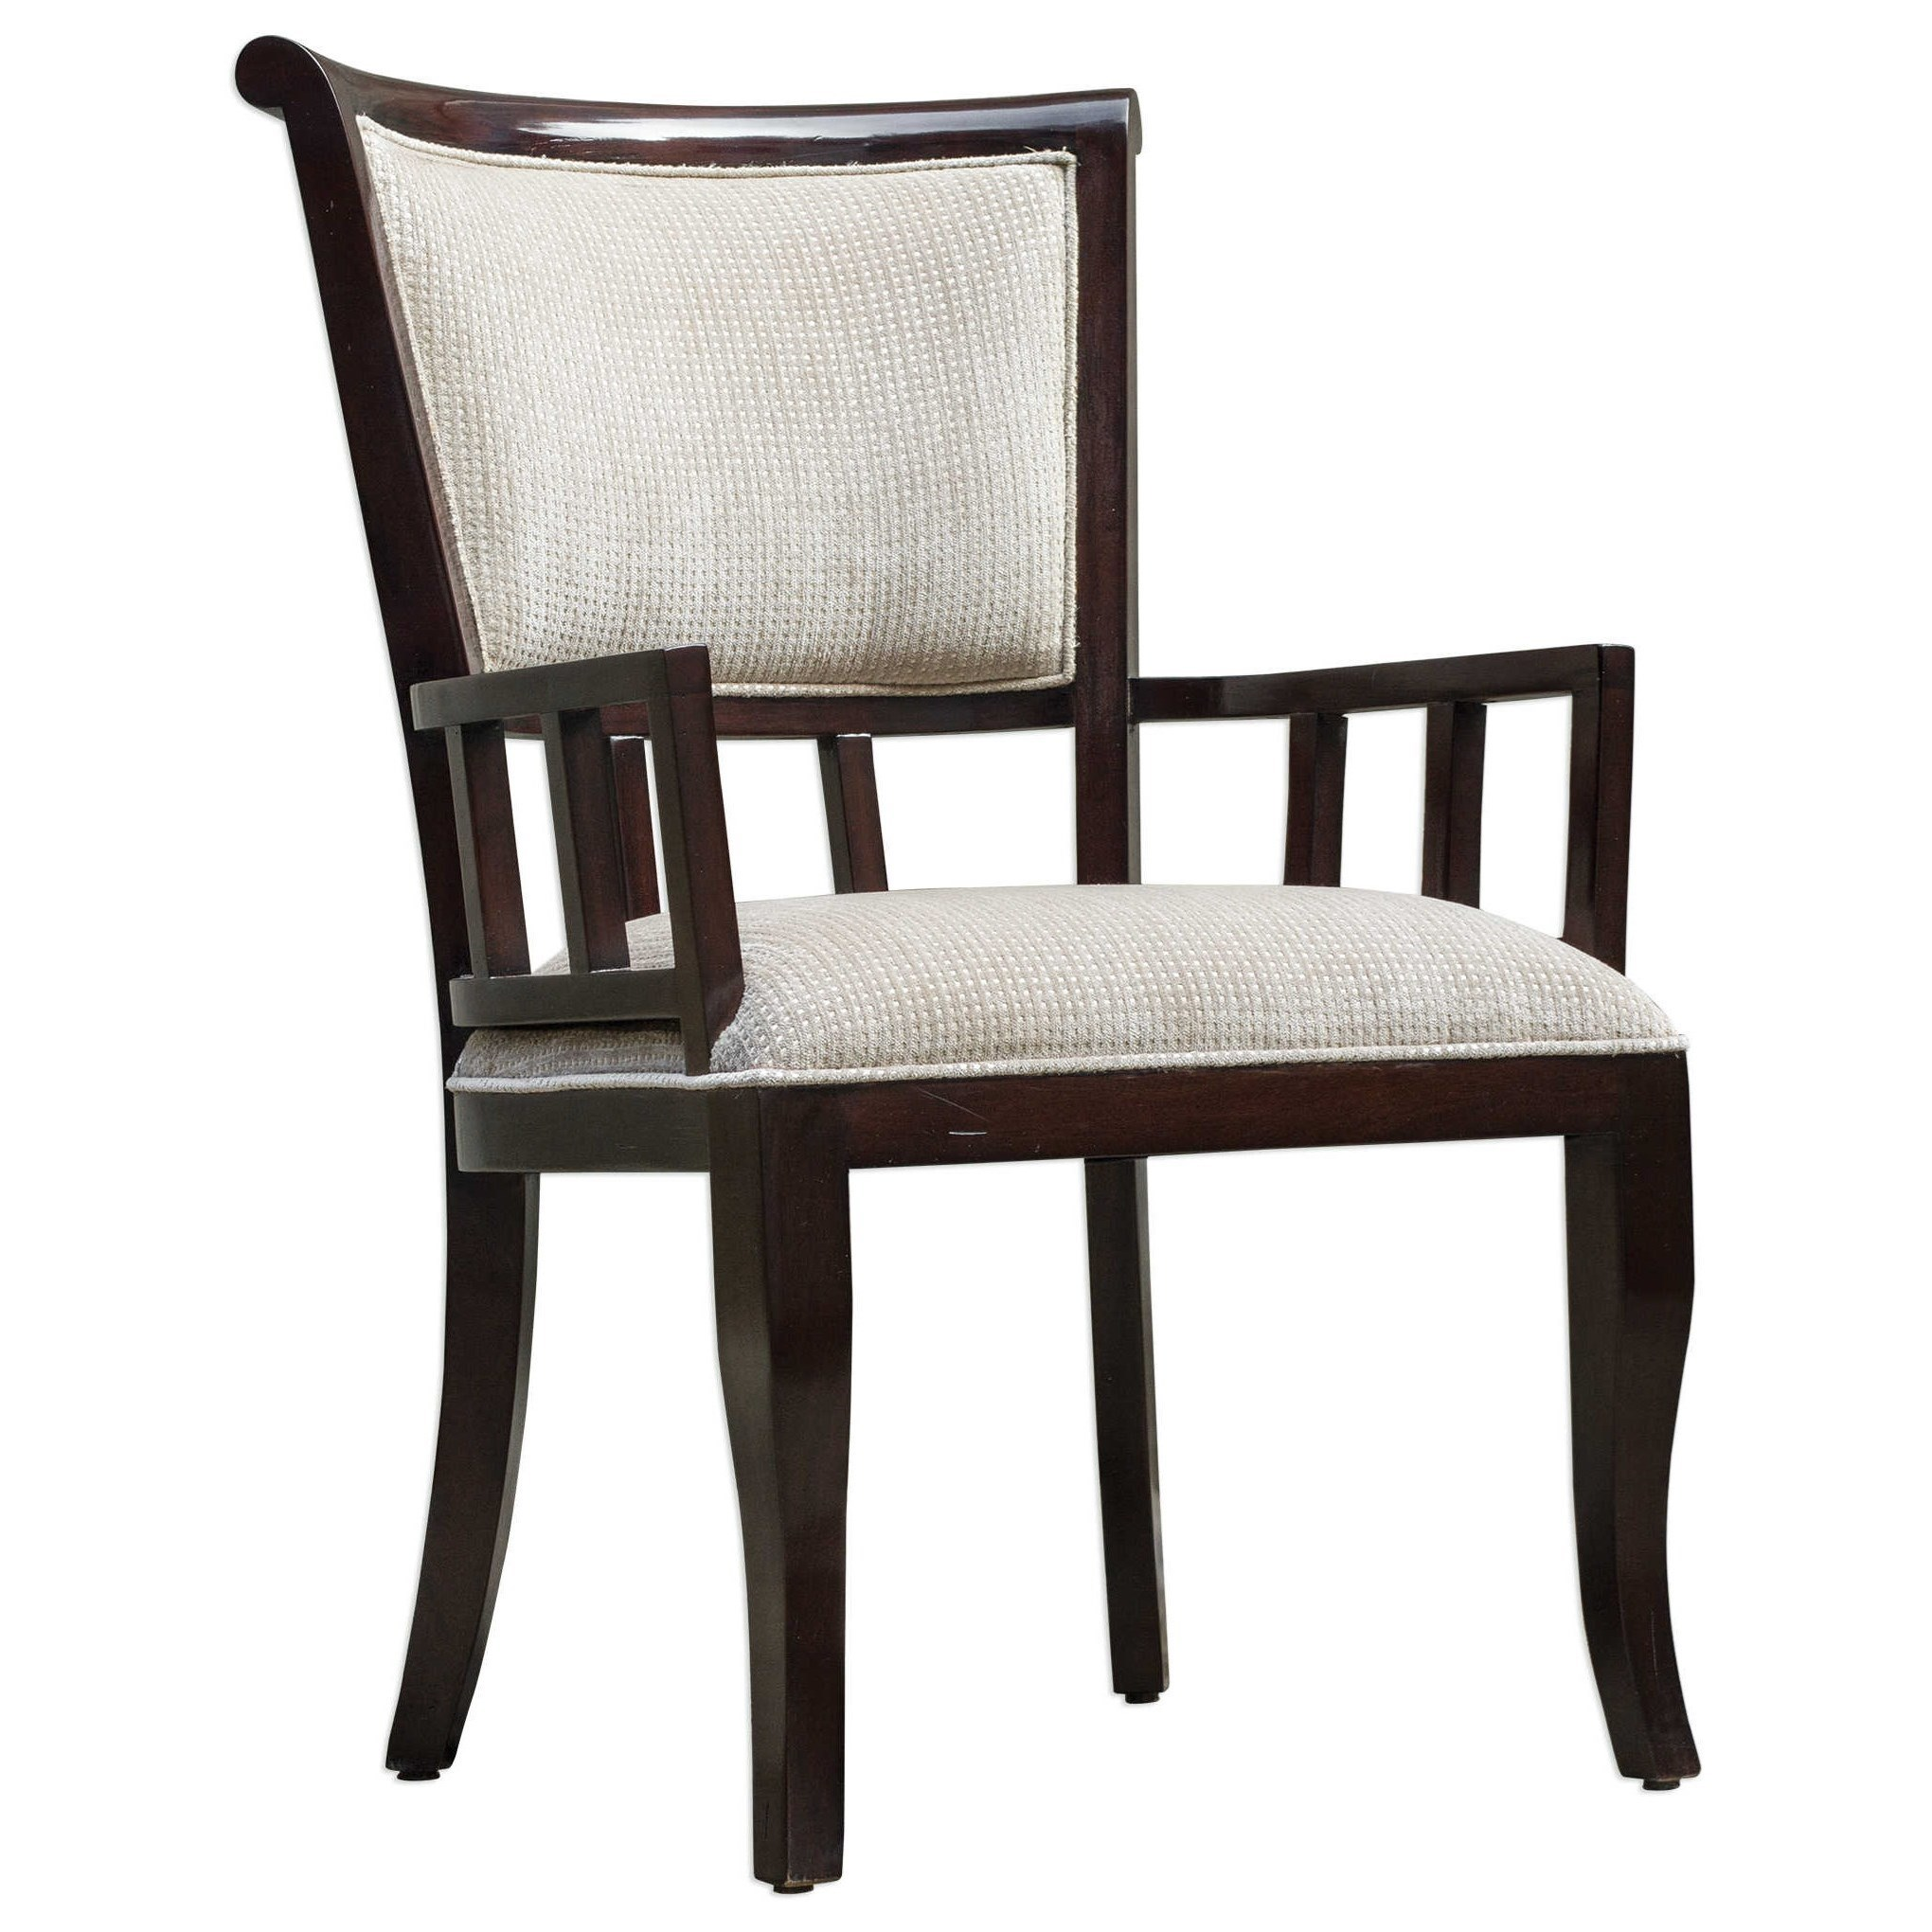 Uttermost Accent Furniture Orlin Mahogany Accent Chair - Item Number: 23656